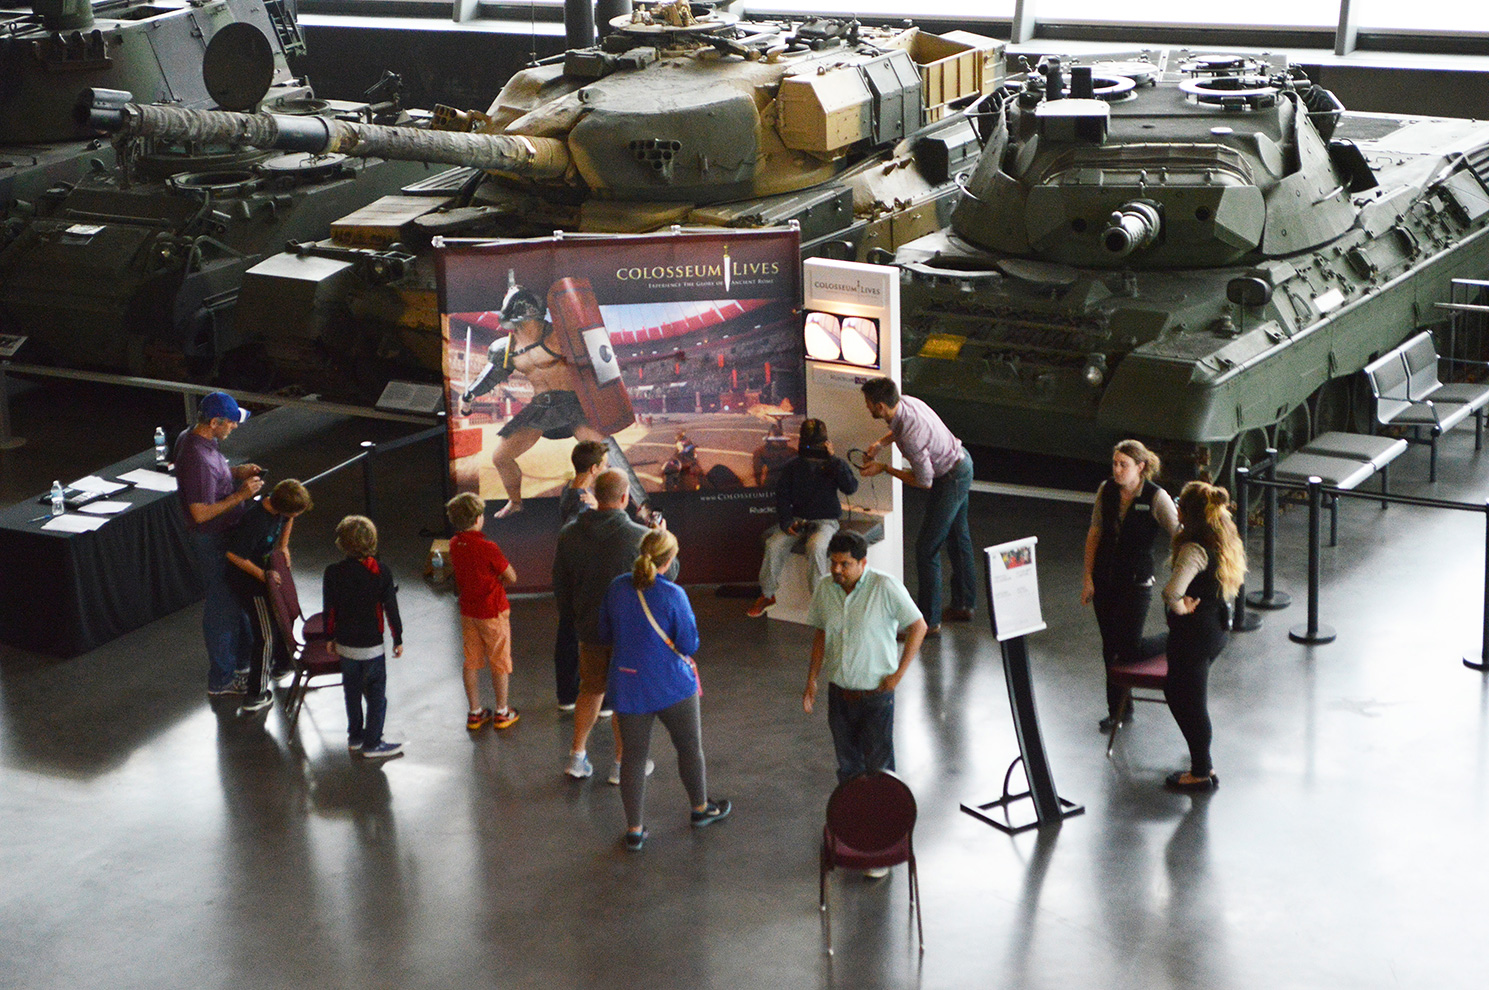 Going public at the Canadian War Museum